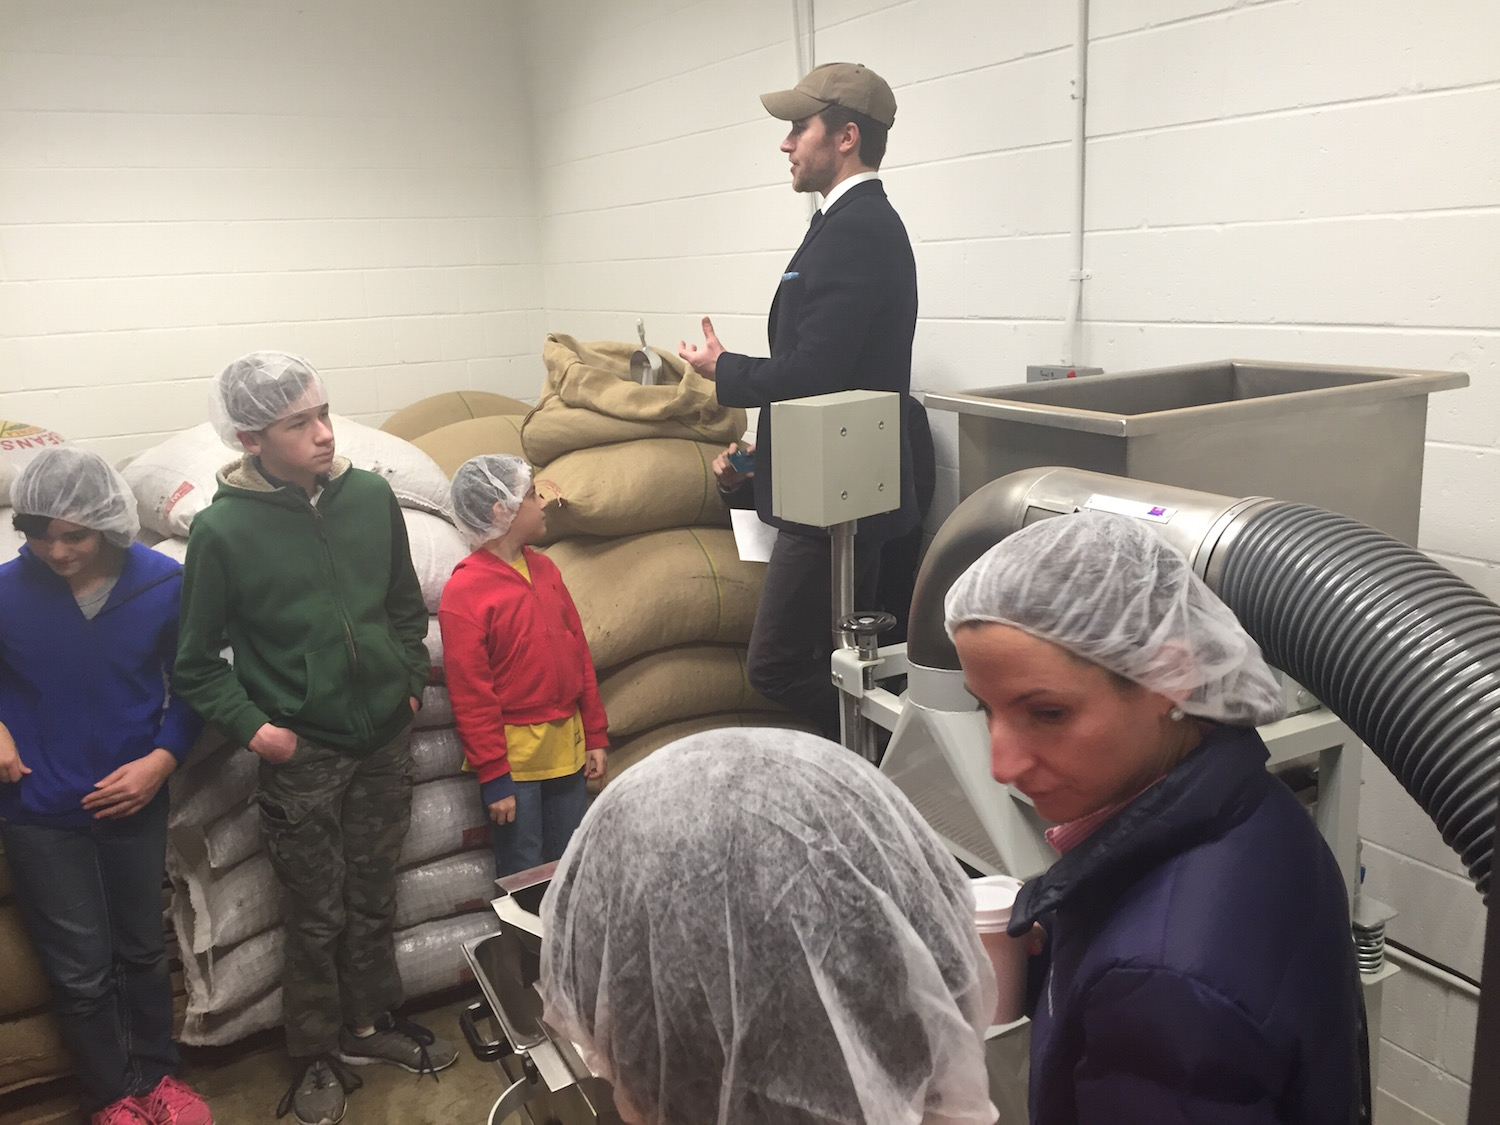 Owner Colin Hartman starts the tour in a room where the beans are stored and cleaned